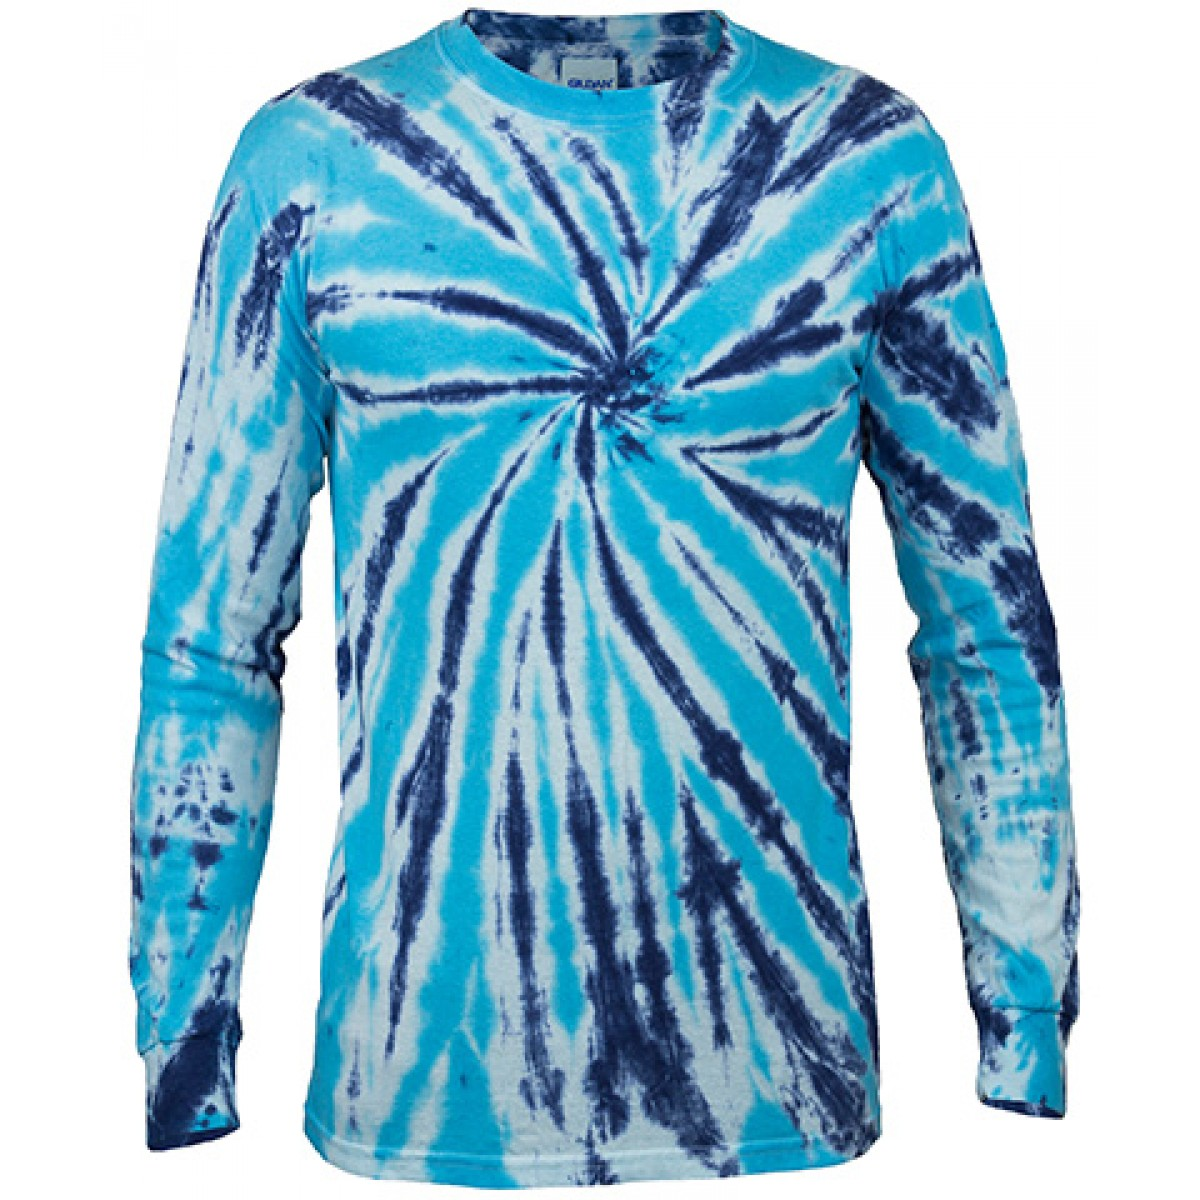 Multi Color Tie-Dye Long Sleeve Shirt -Royal Blue-YL